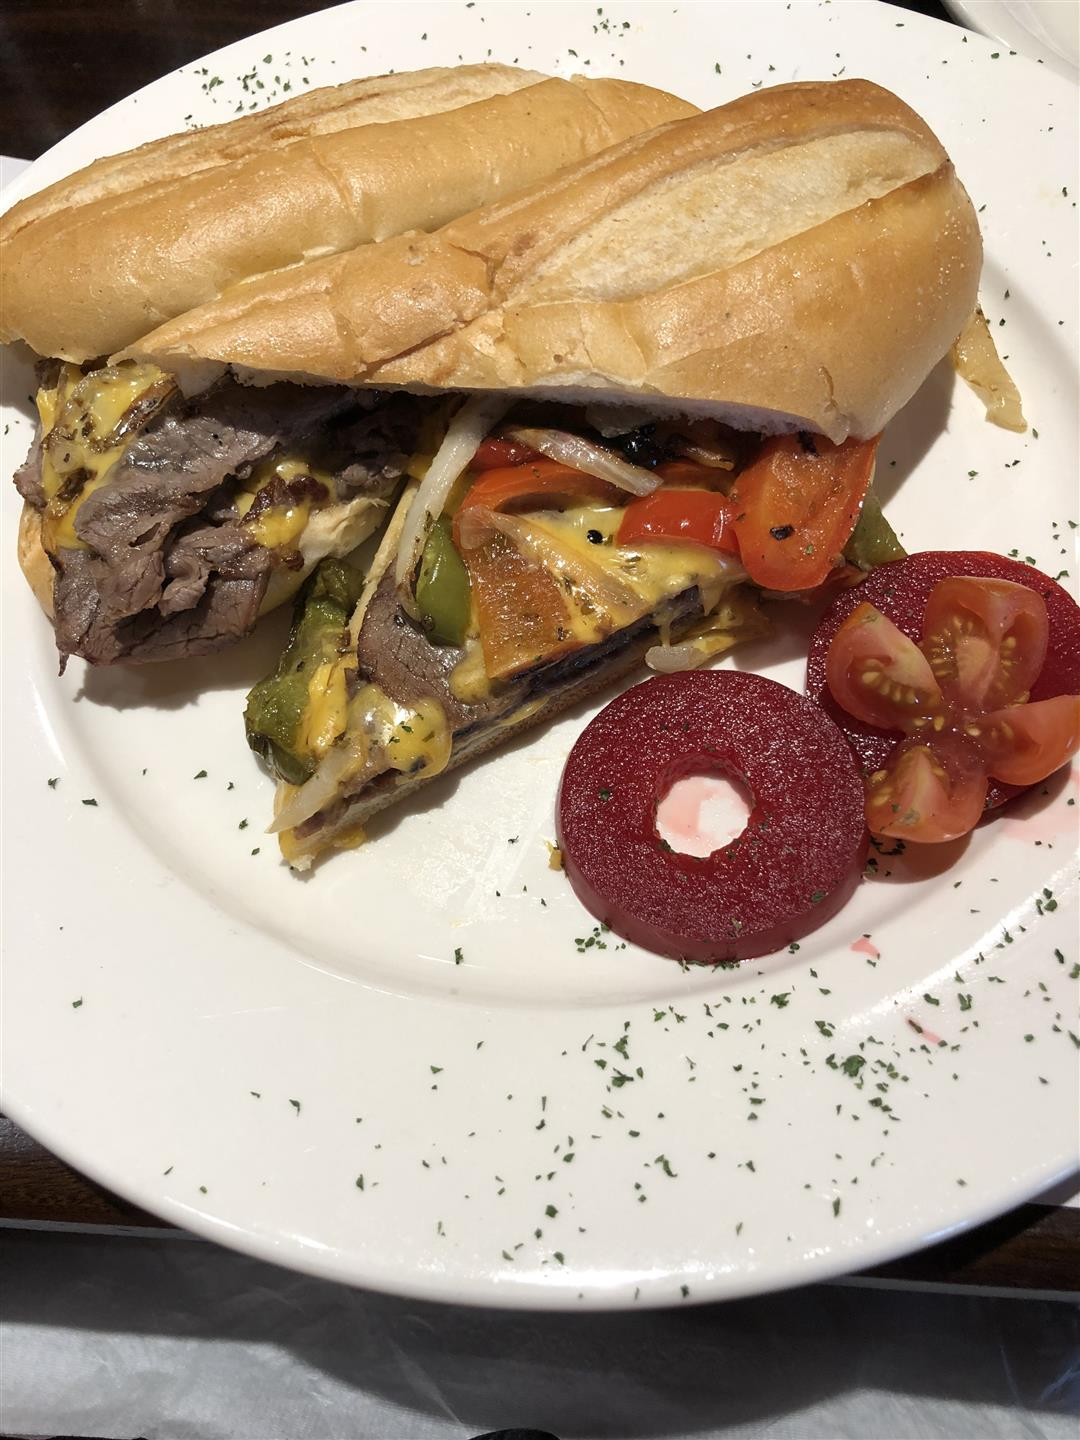 Philadelphia Cheese Steak on a plate cut in half with cranberry slices on the side